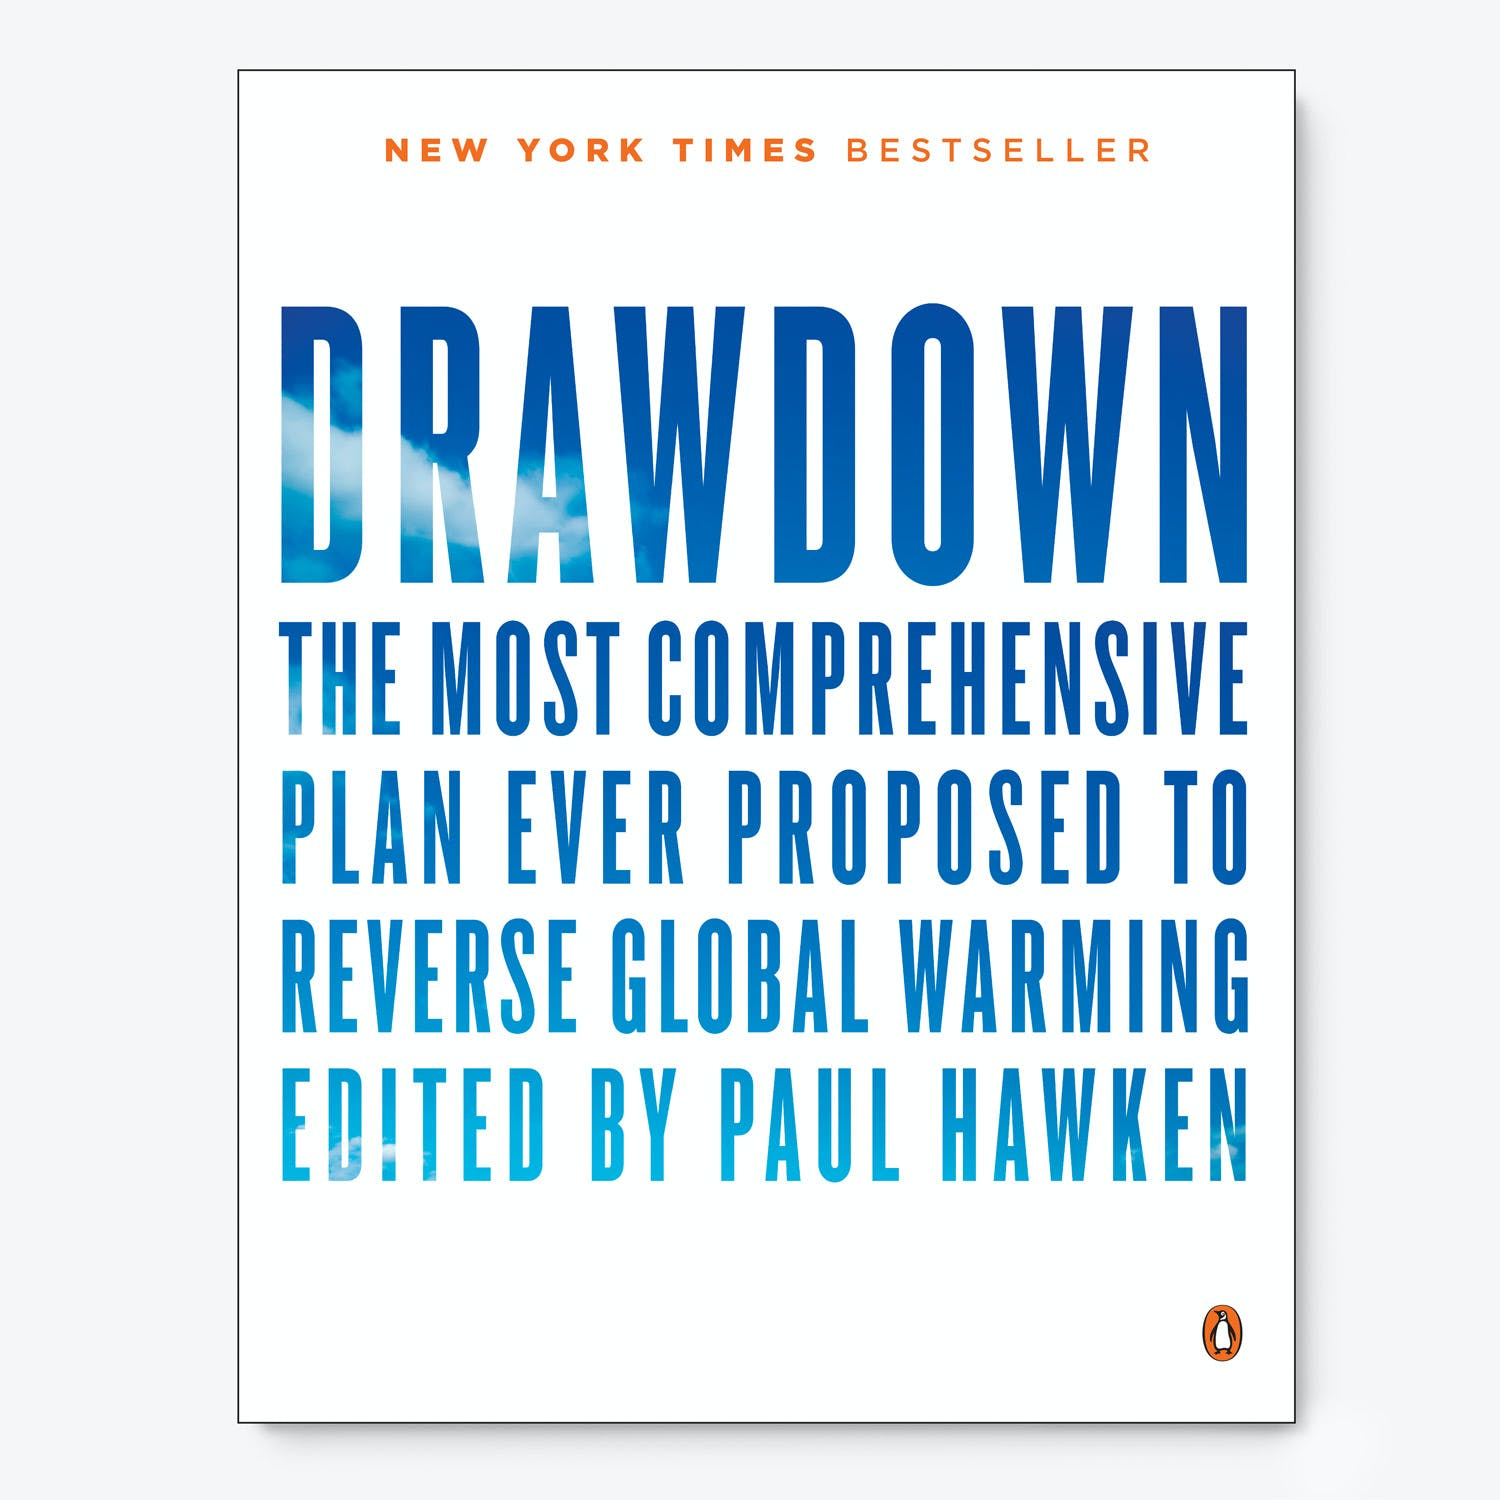 Drawdown: The Most Comprehensive Plan Ever Proposed to Reverse Global Warming By Paul Hawken